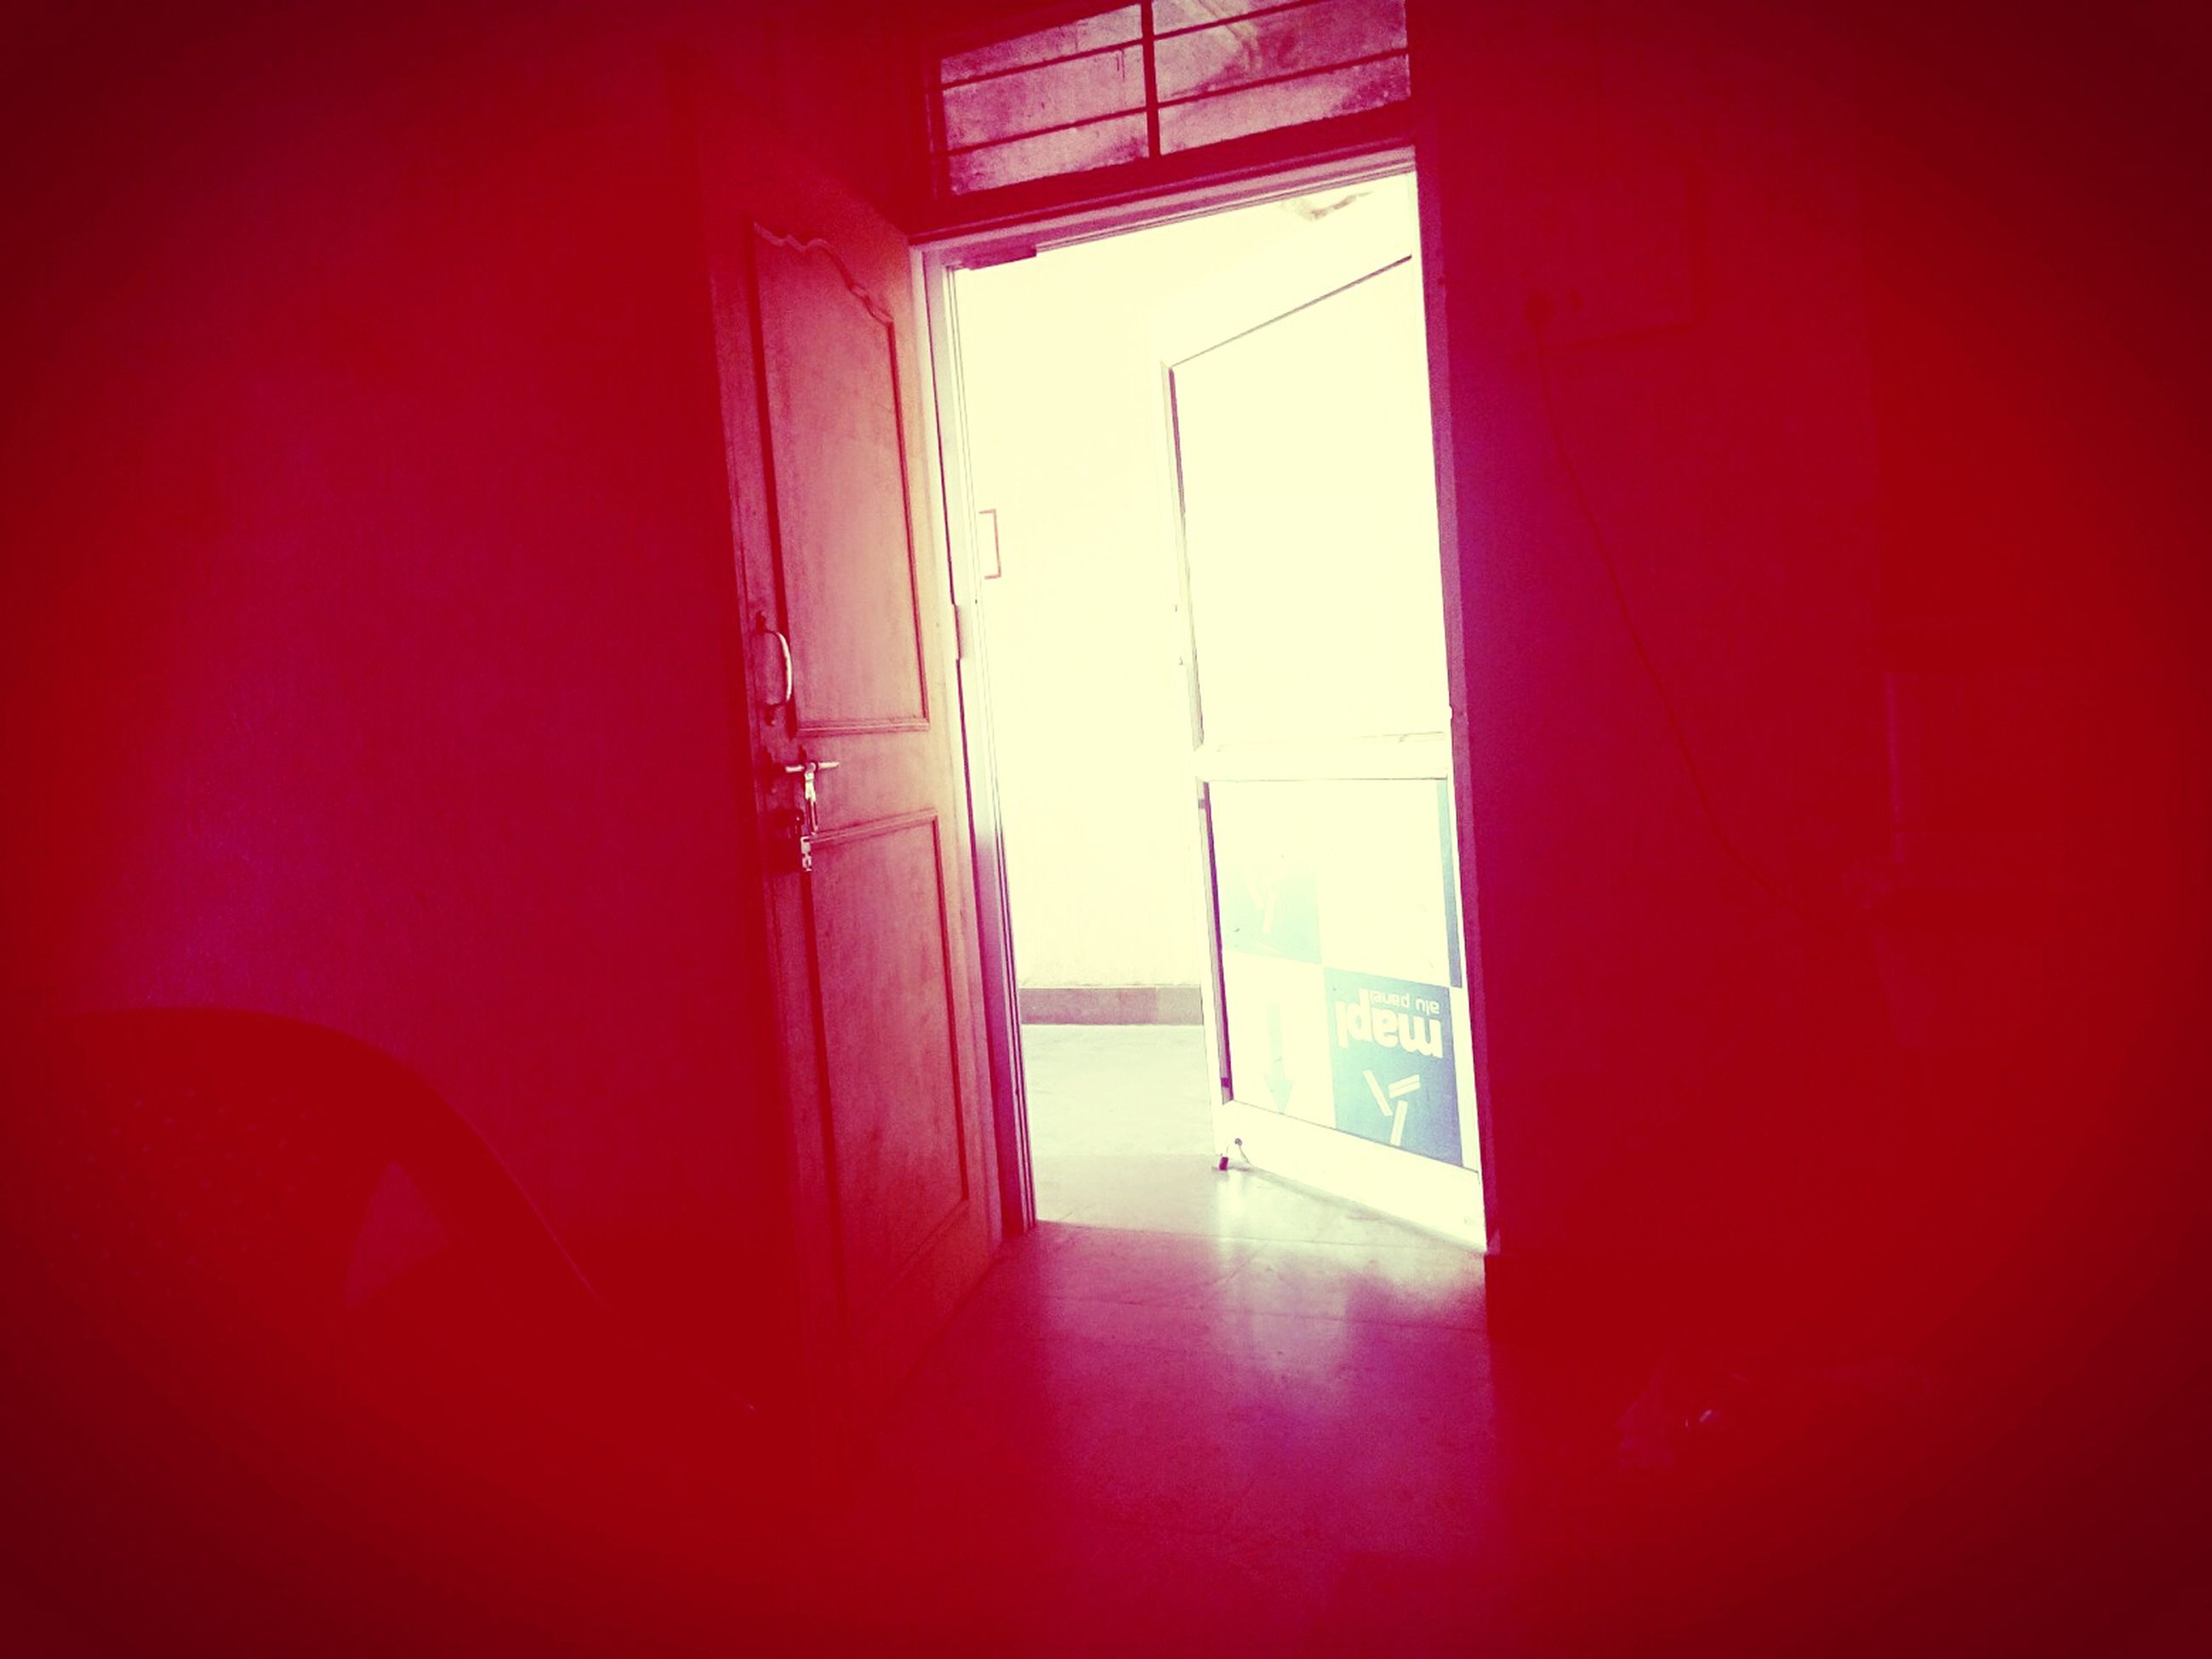 indoors, window, curtain, home interior, architecture, glass - material, built structure, transparent, door, absence, red, empty, house, sunlight, open, corridor, chair, domestic room, day, no people